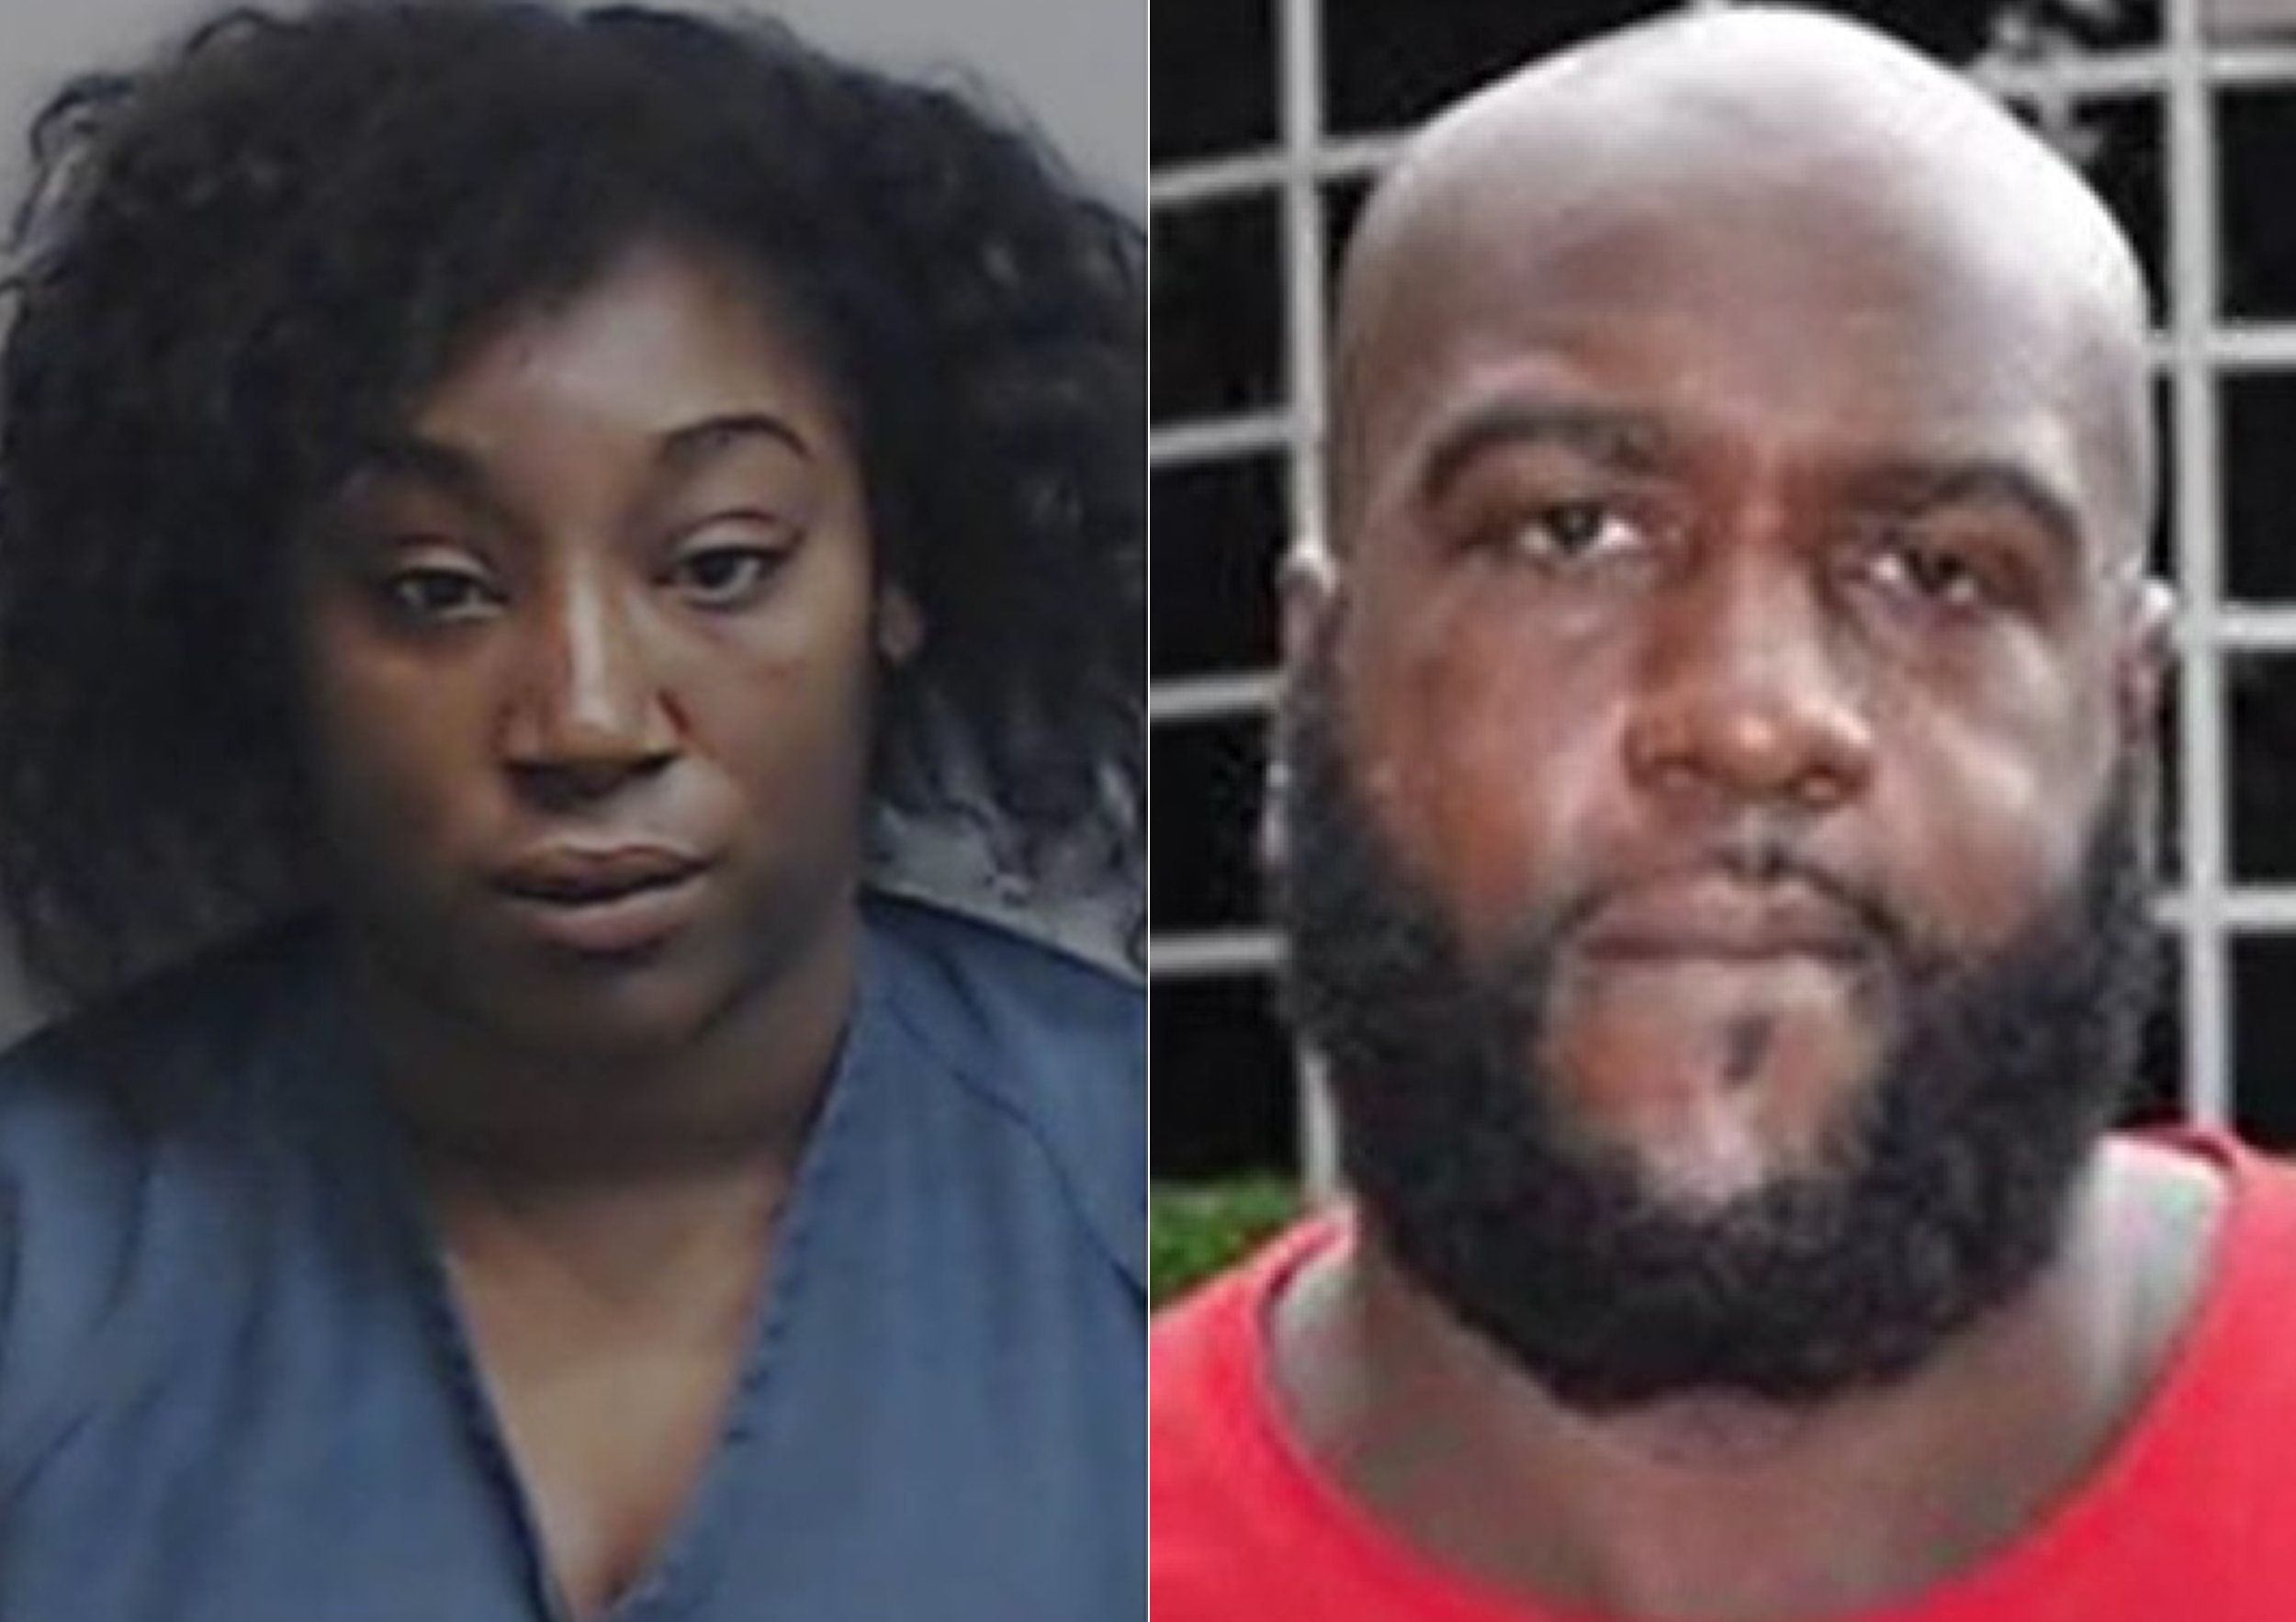 Photos taken by sheriff's deputies after the arrest of Dominique Berry and Randy Schenck.